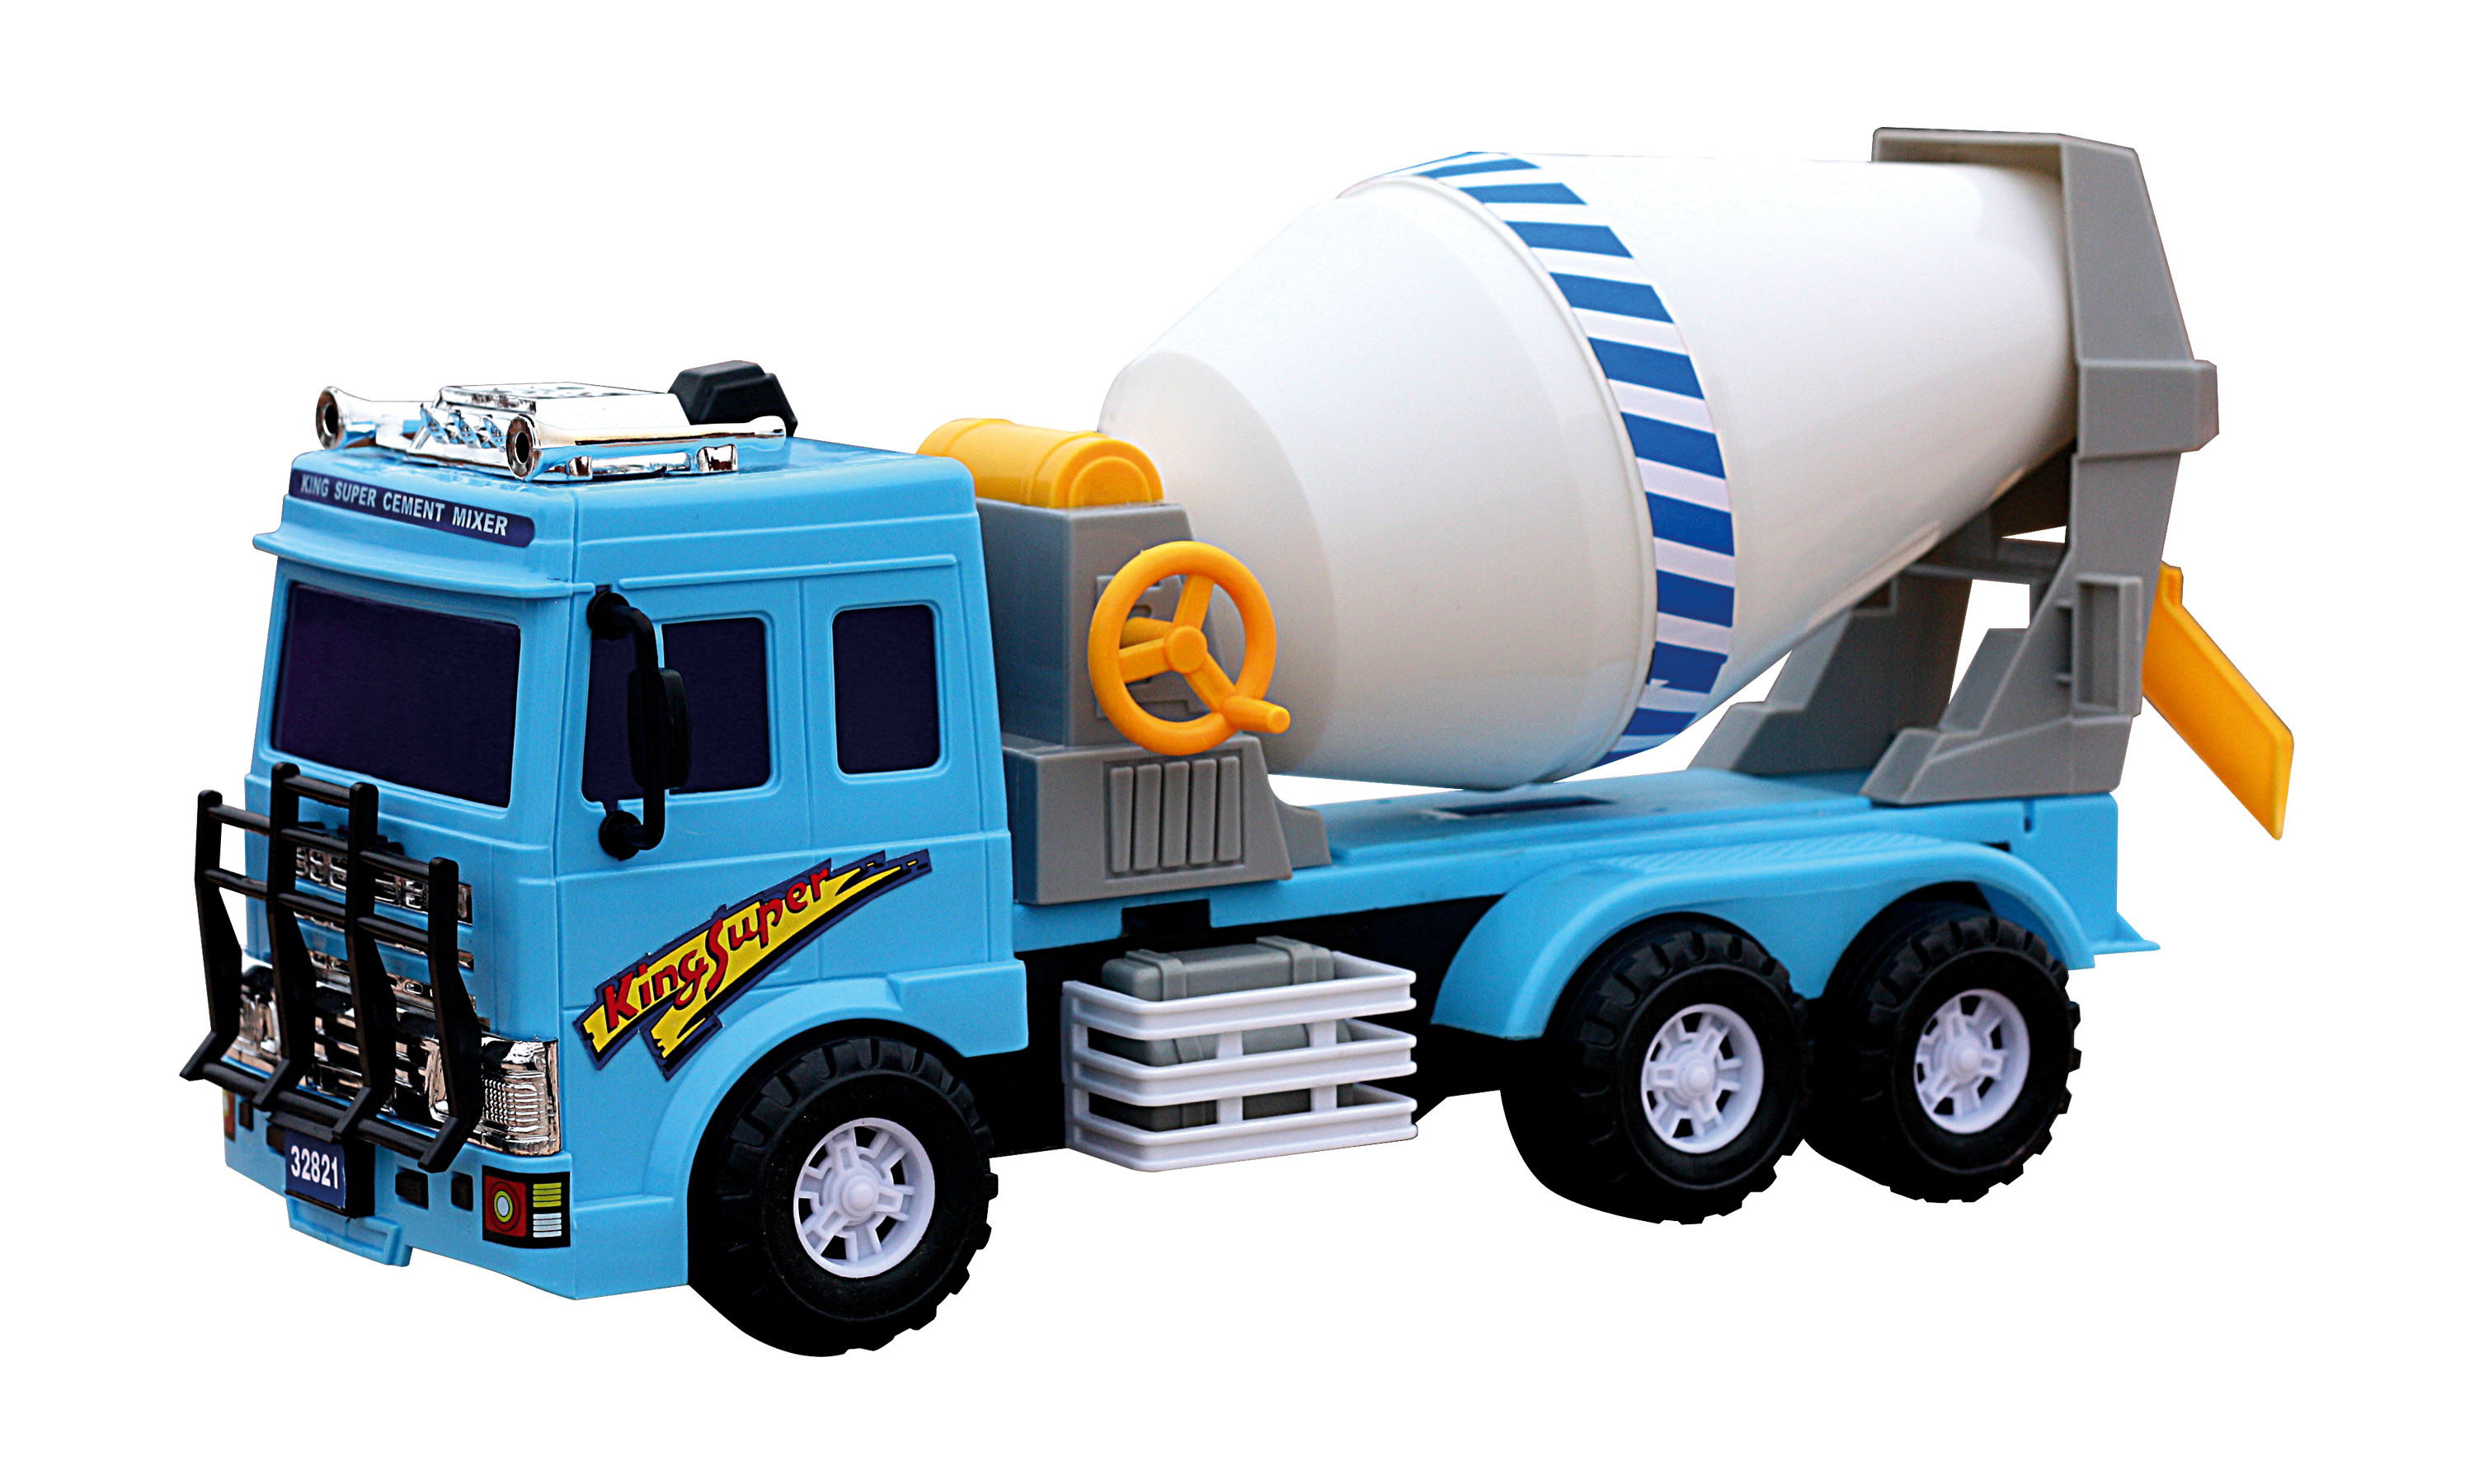 Mixer Truck Toy : Large cement mixer truck toy glopo inc